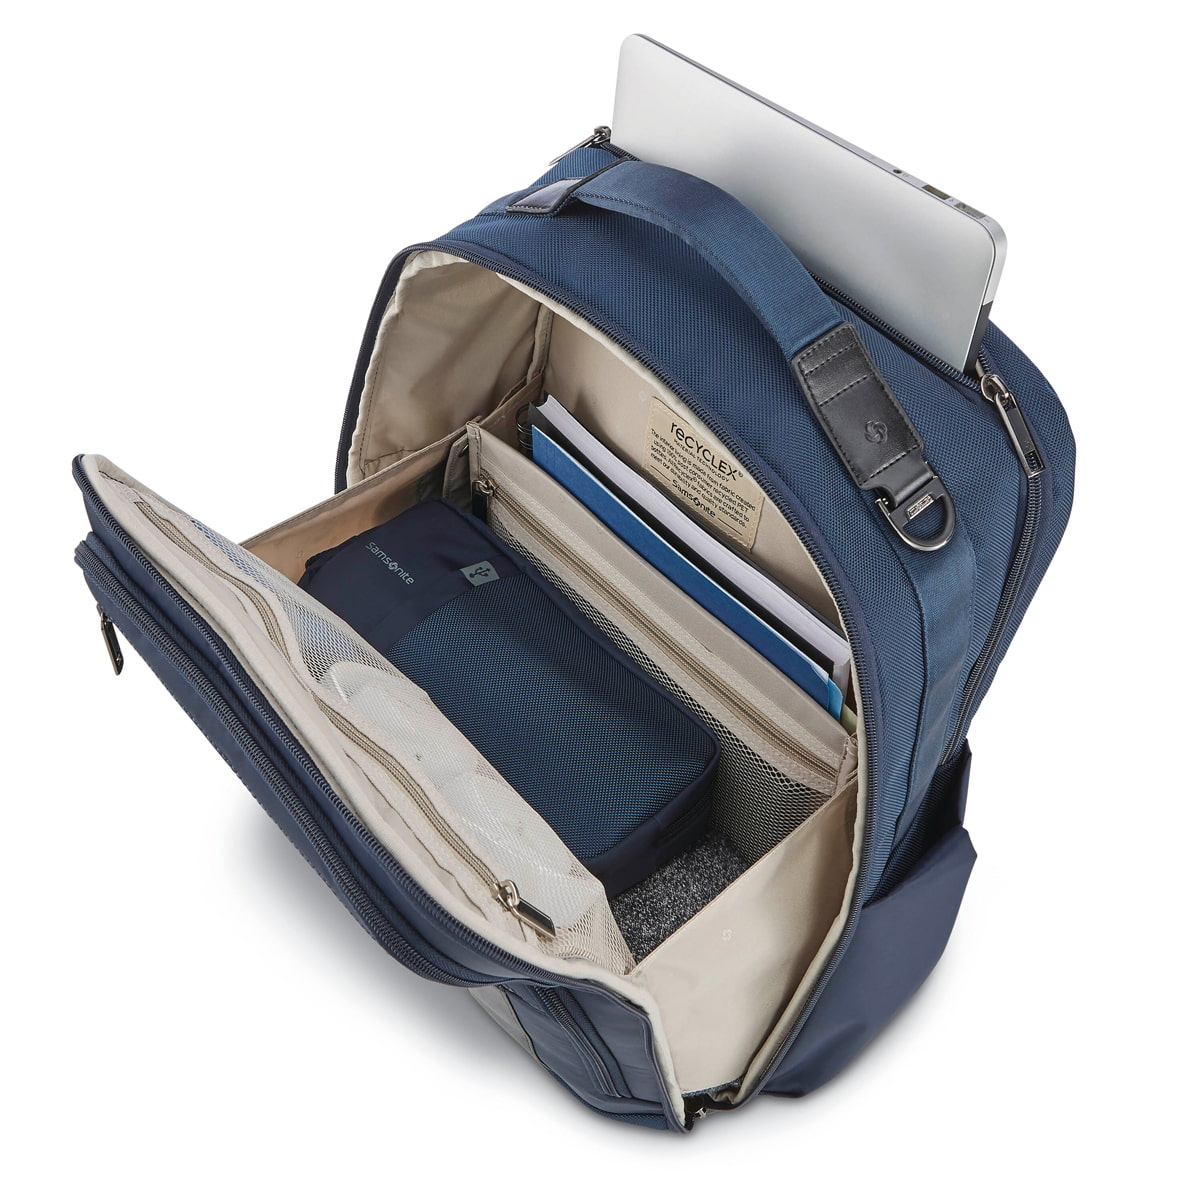 Best Convertible Backpack for Work and Travel